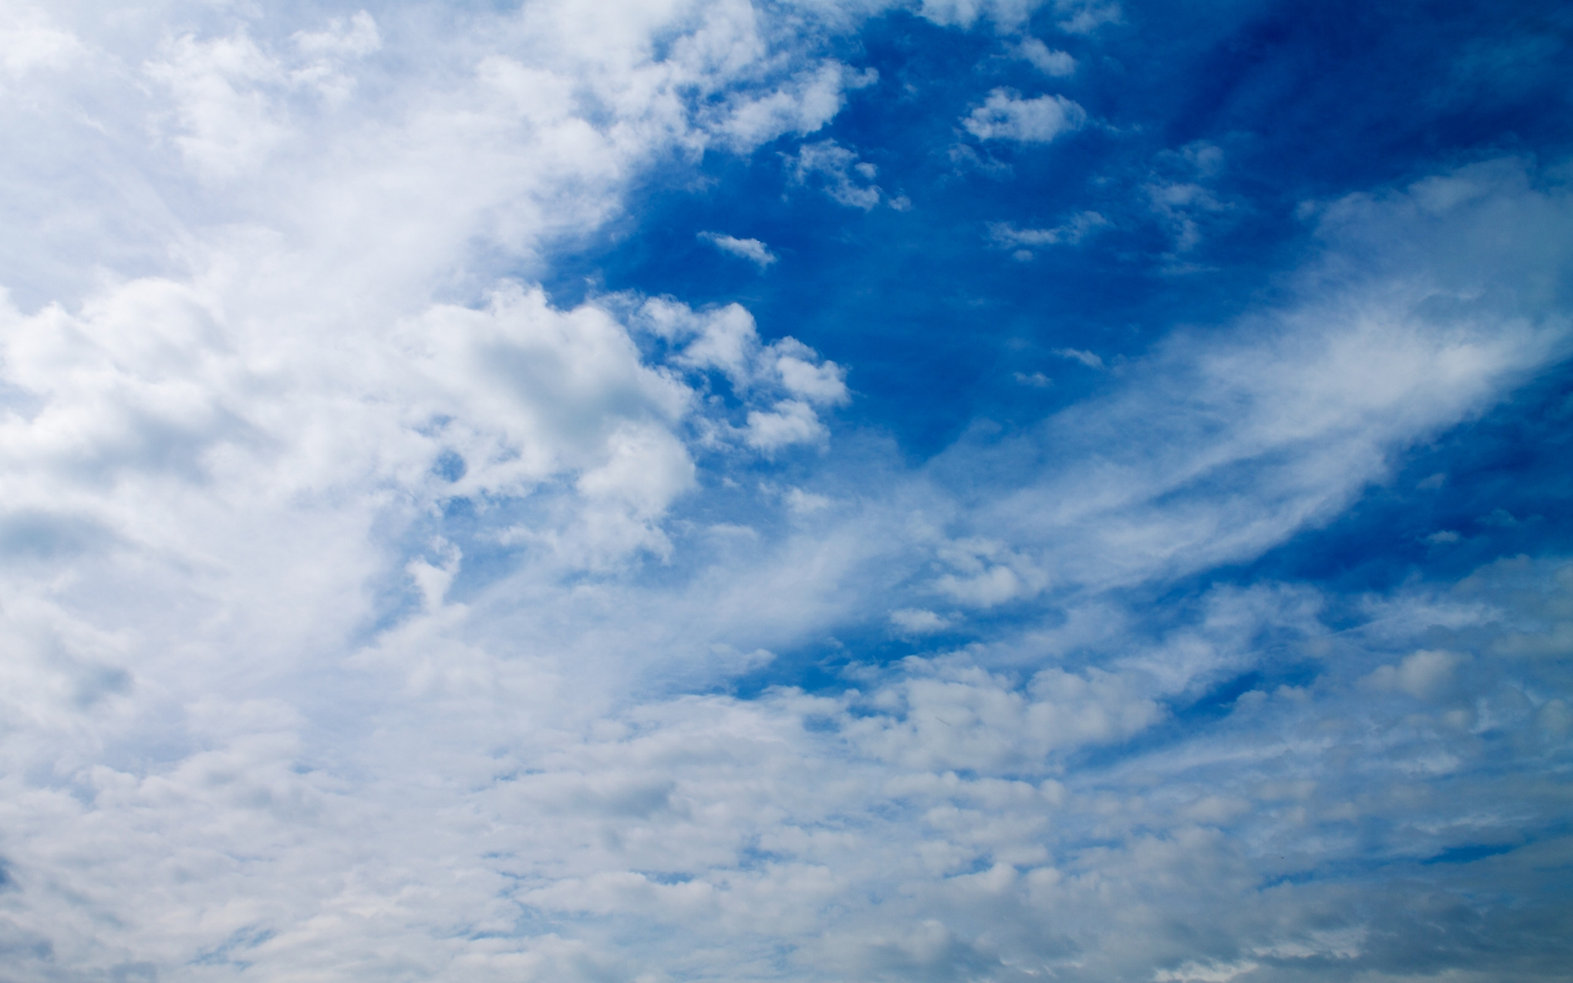 White-Clouds-On-The-Blue-Sky-Nature-2560